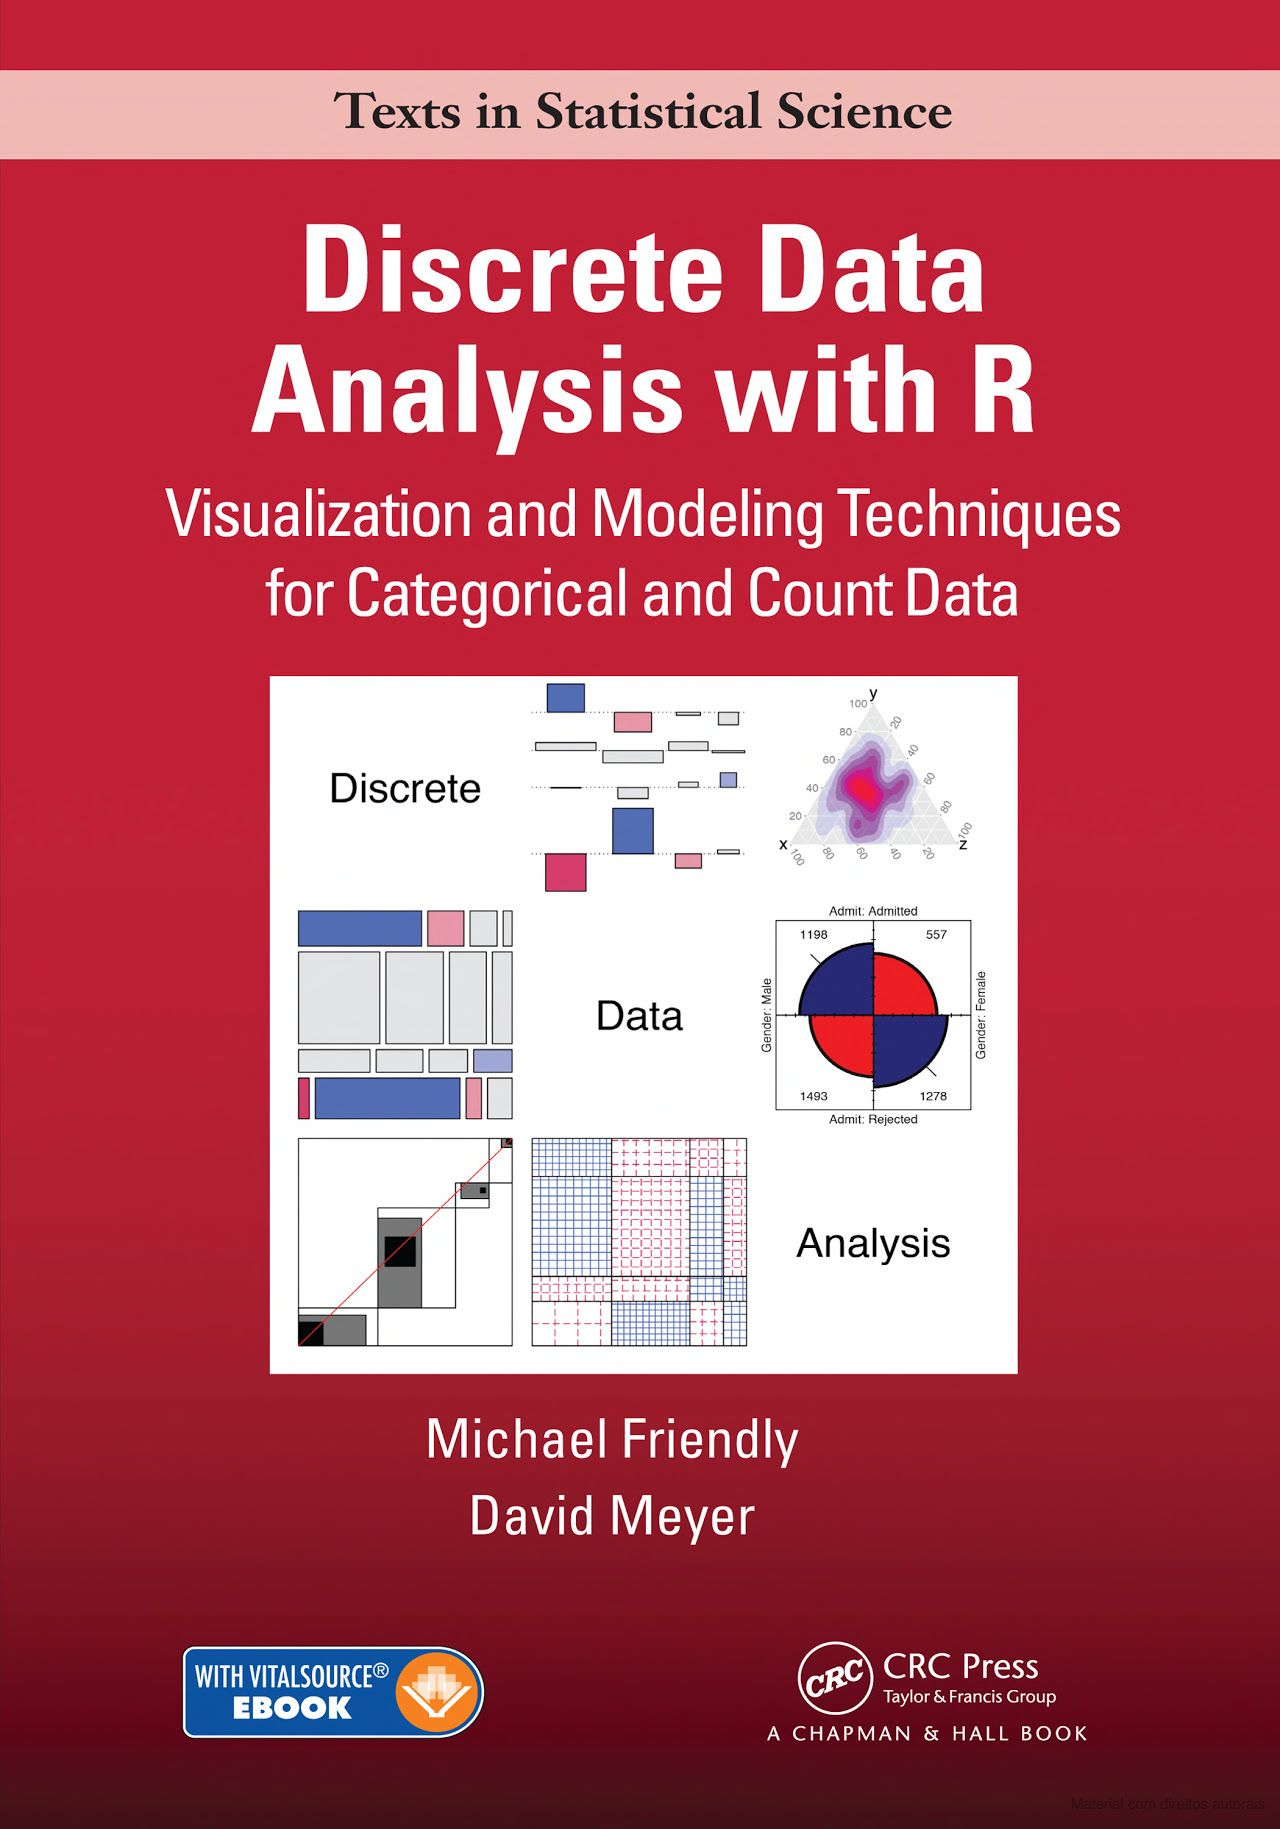 Discrete Data Analysis with R Visualization and Modeling